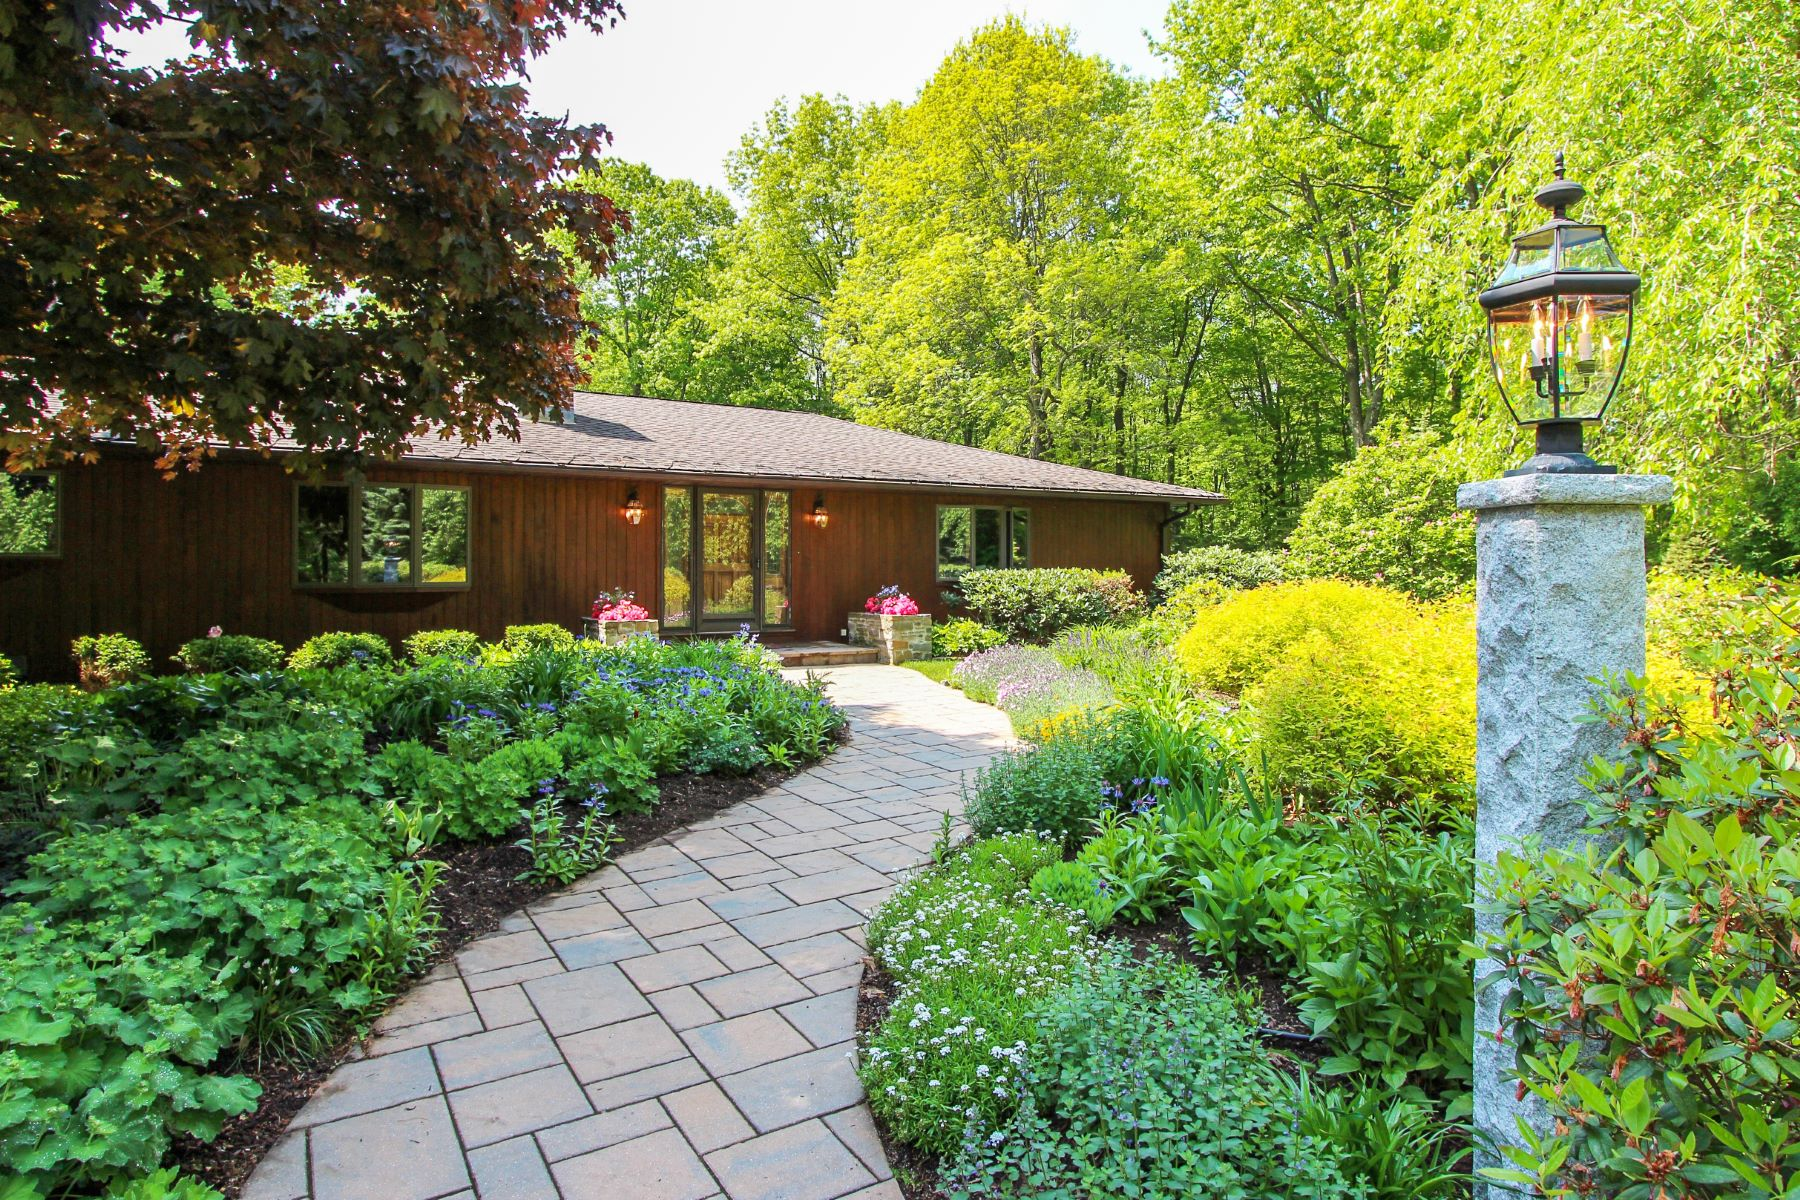 Single Family Home for Sale at Secluded Estate 104 Hart Drive Litchfield, Connecticut 06759 United States